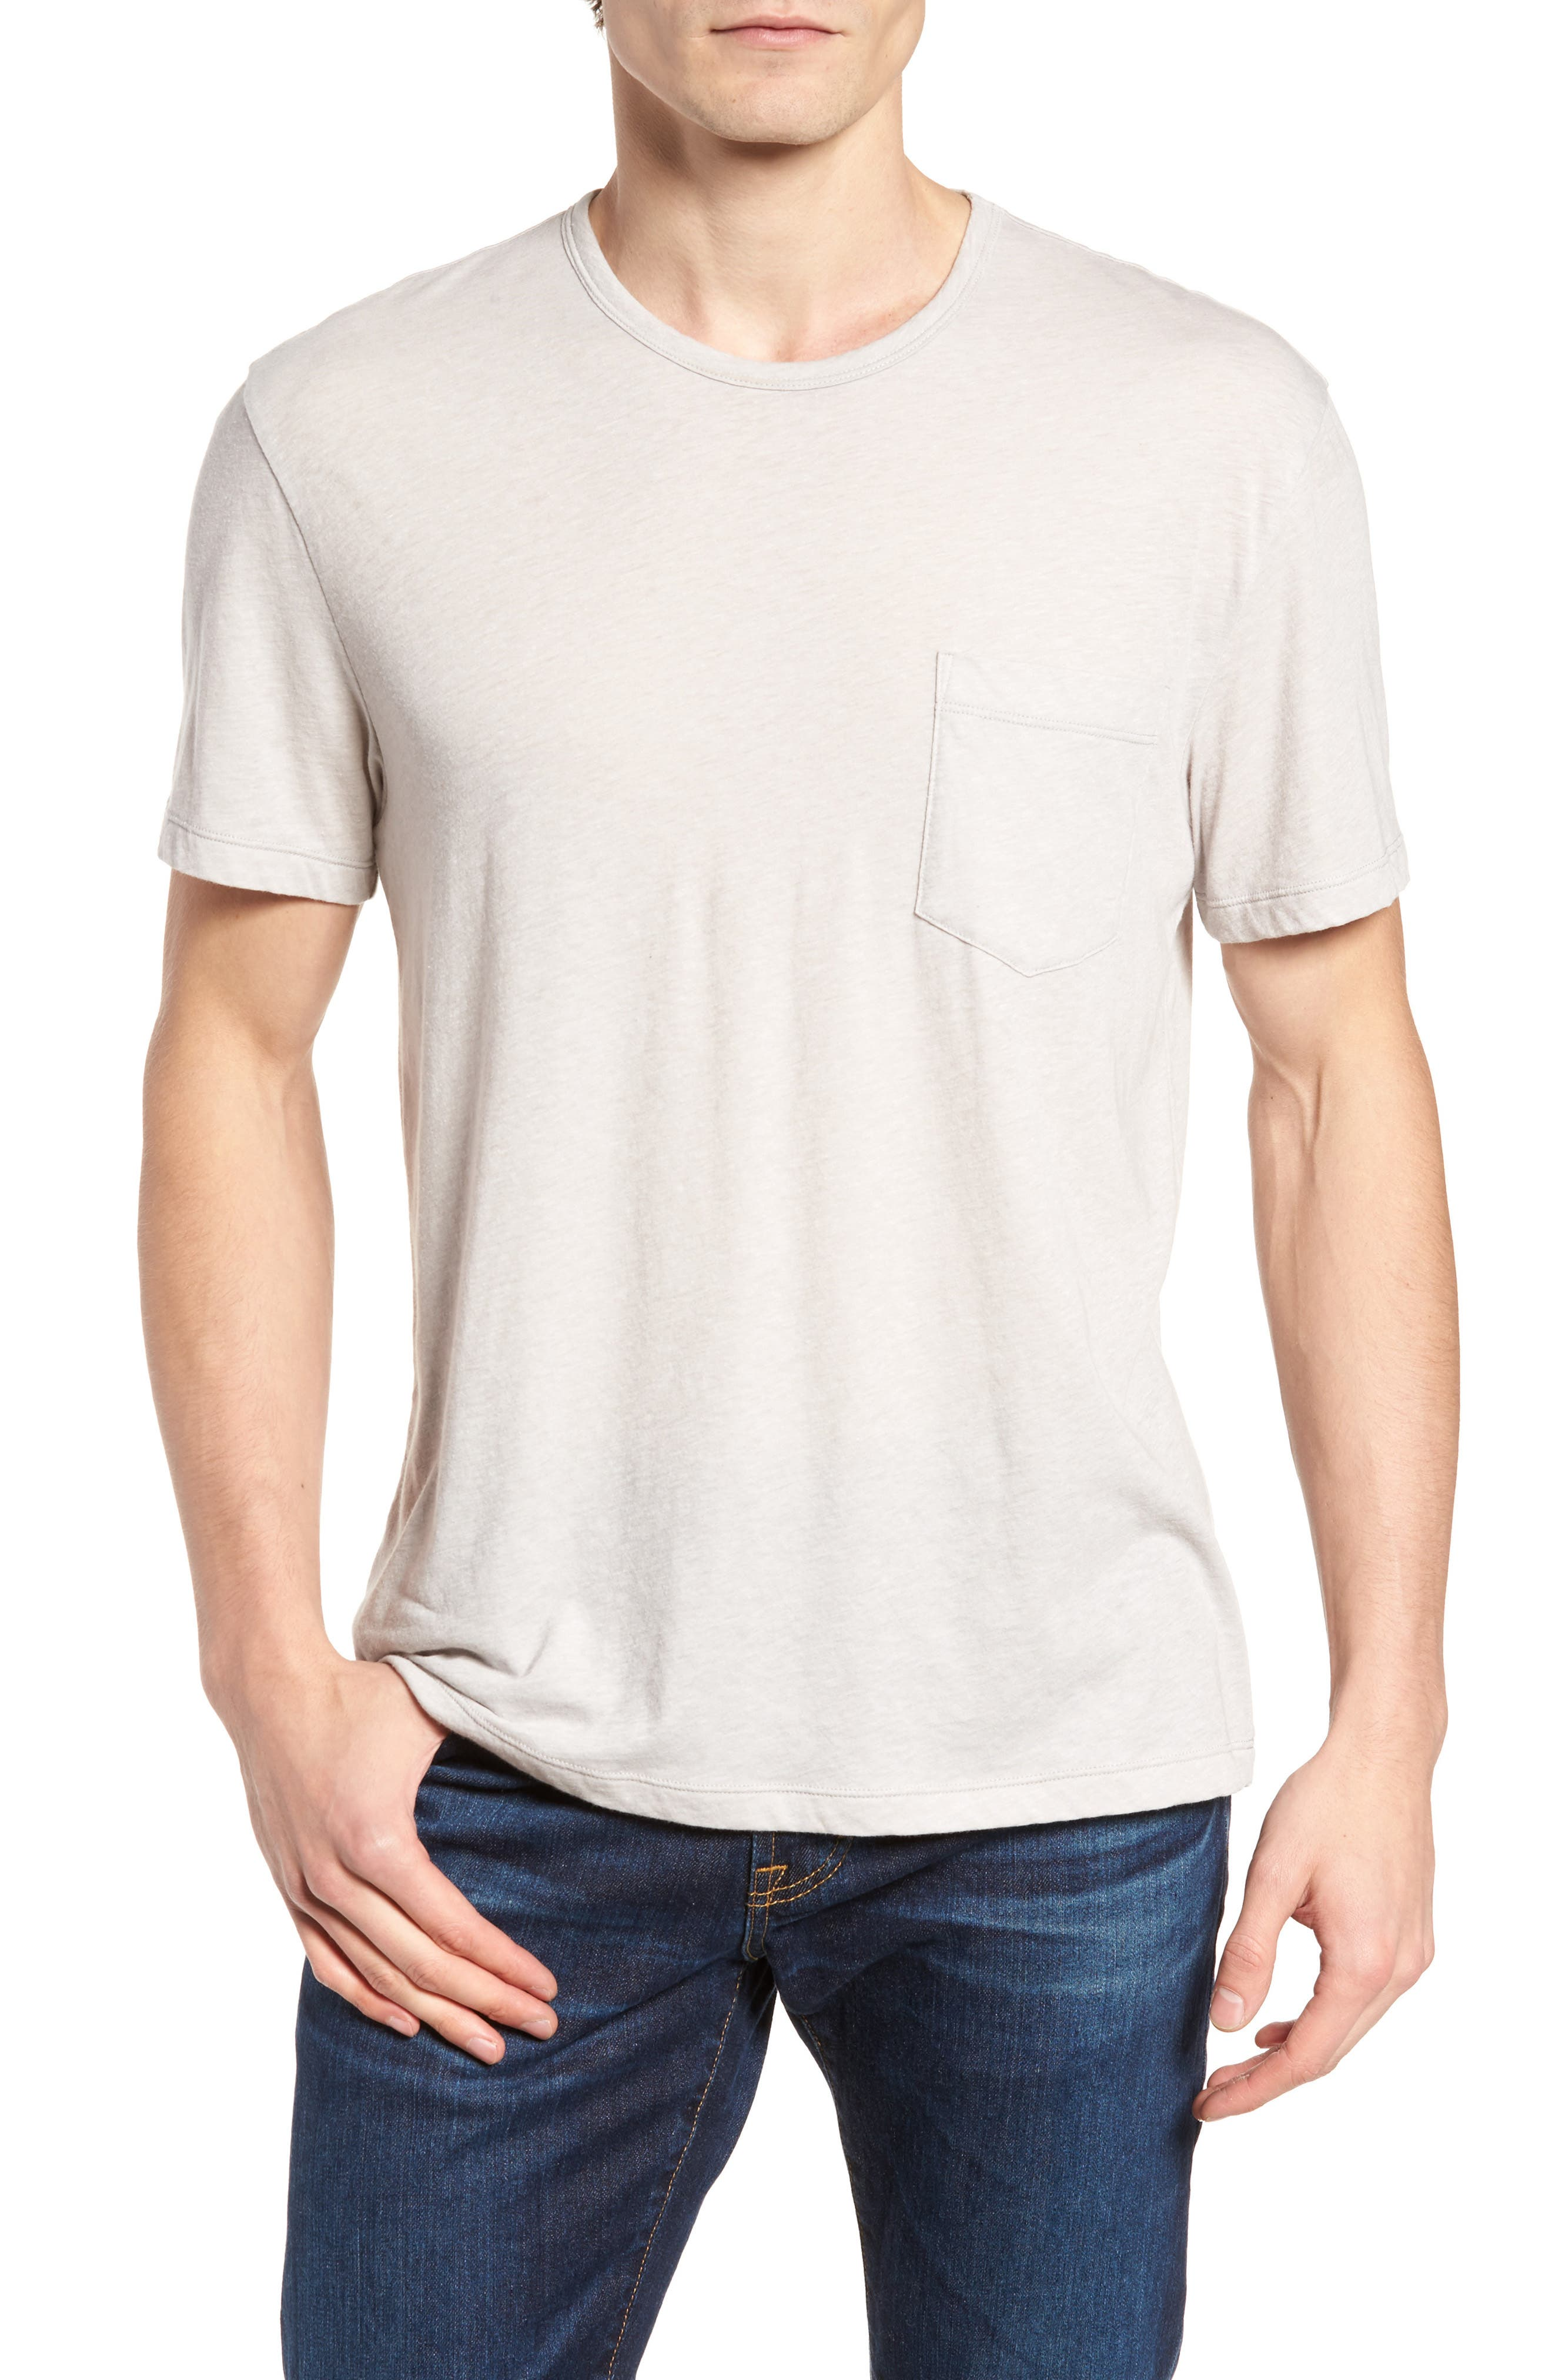 James Perse Slubbed Cotton & Linen Pocket T-Shirt